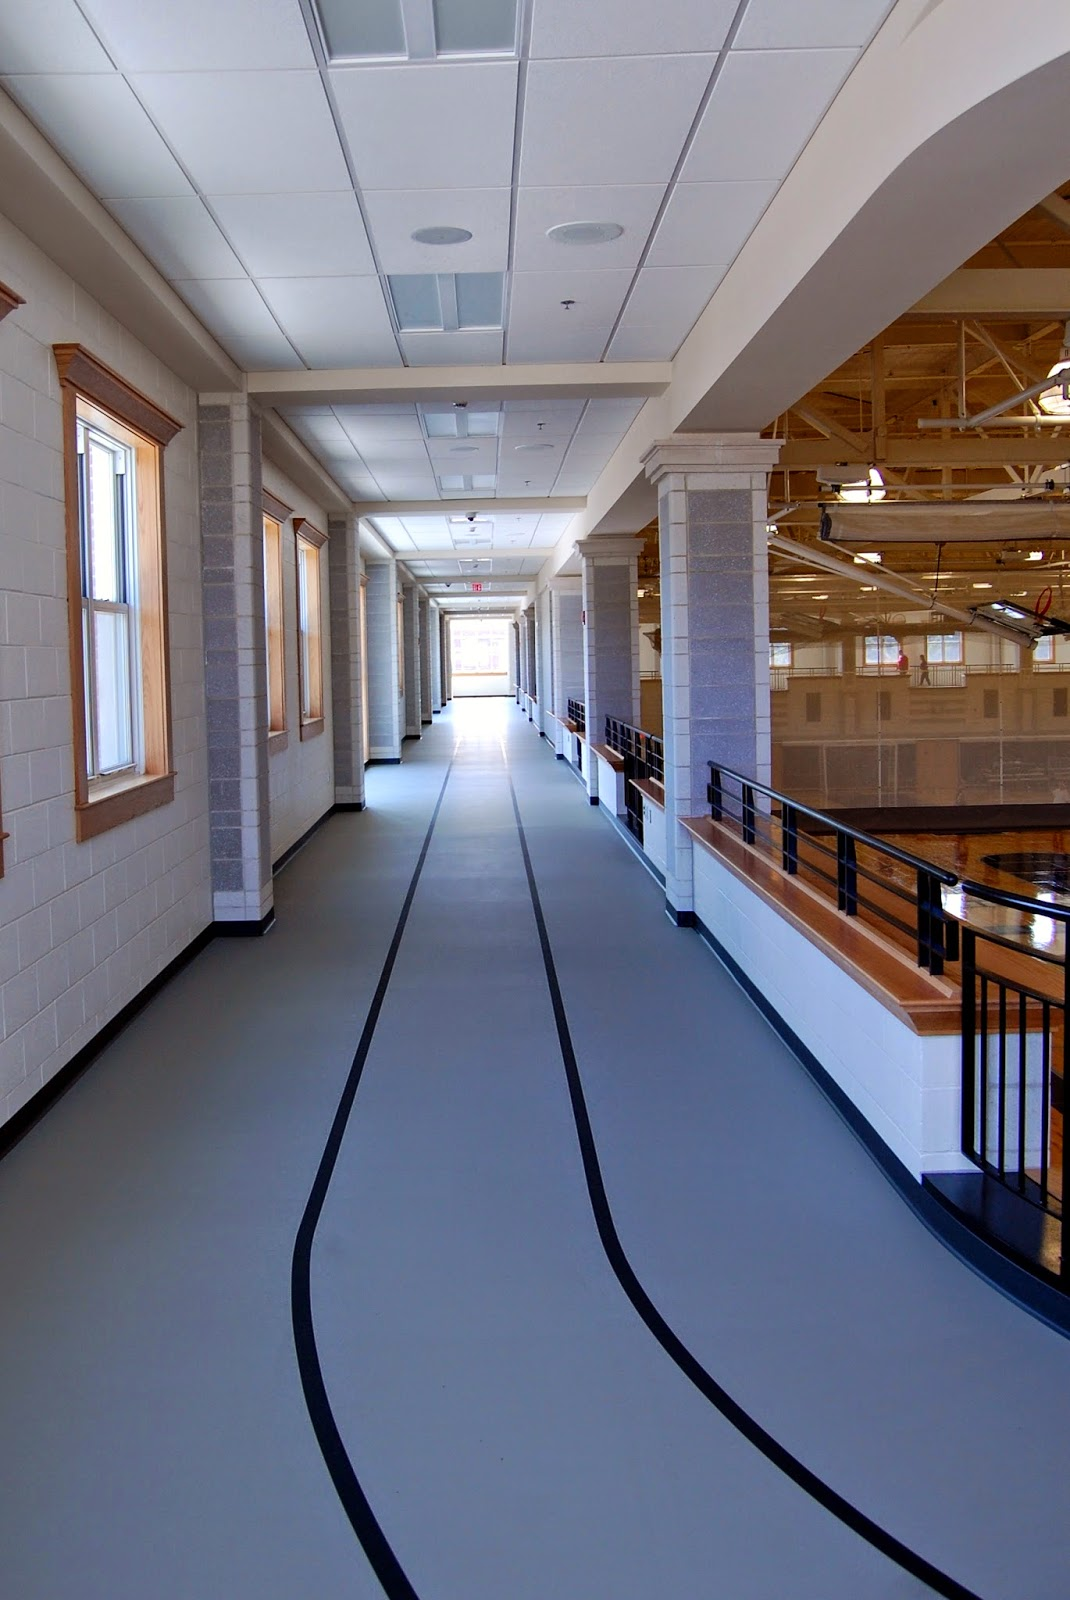 track around the 2nd level of the gymnasium